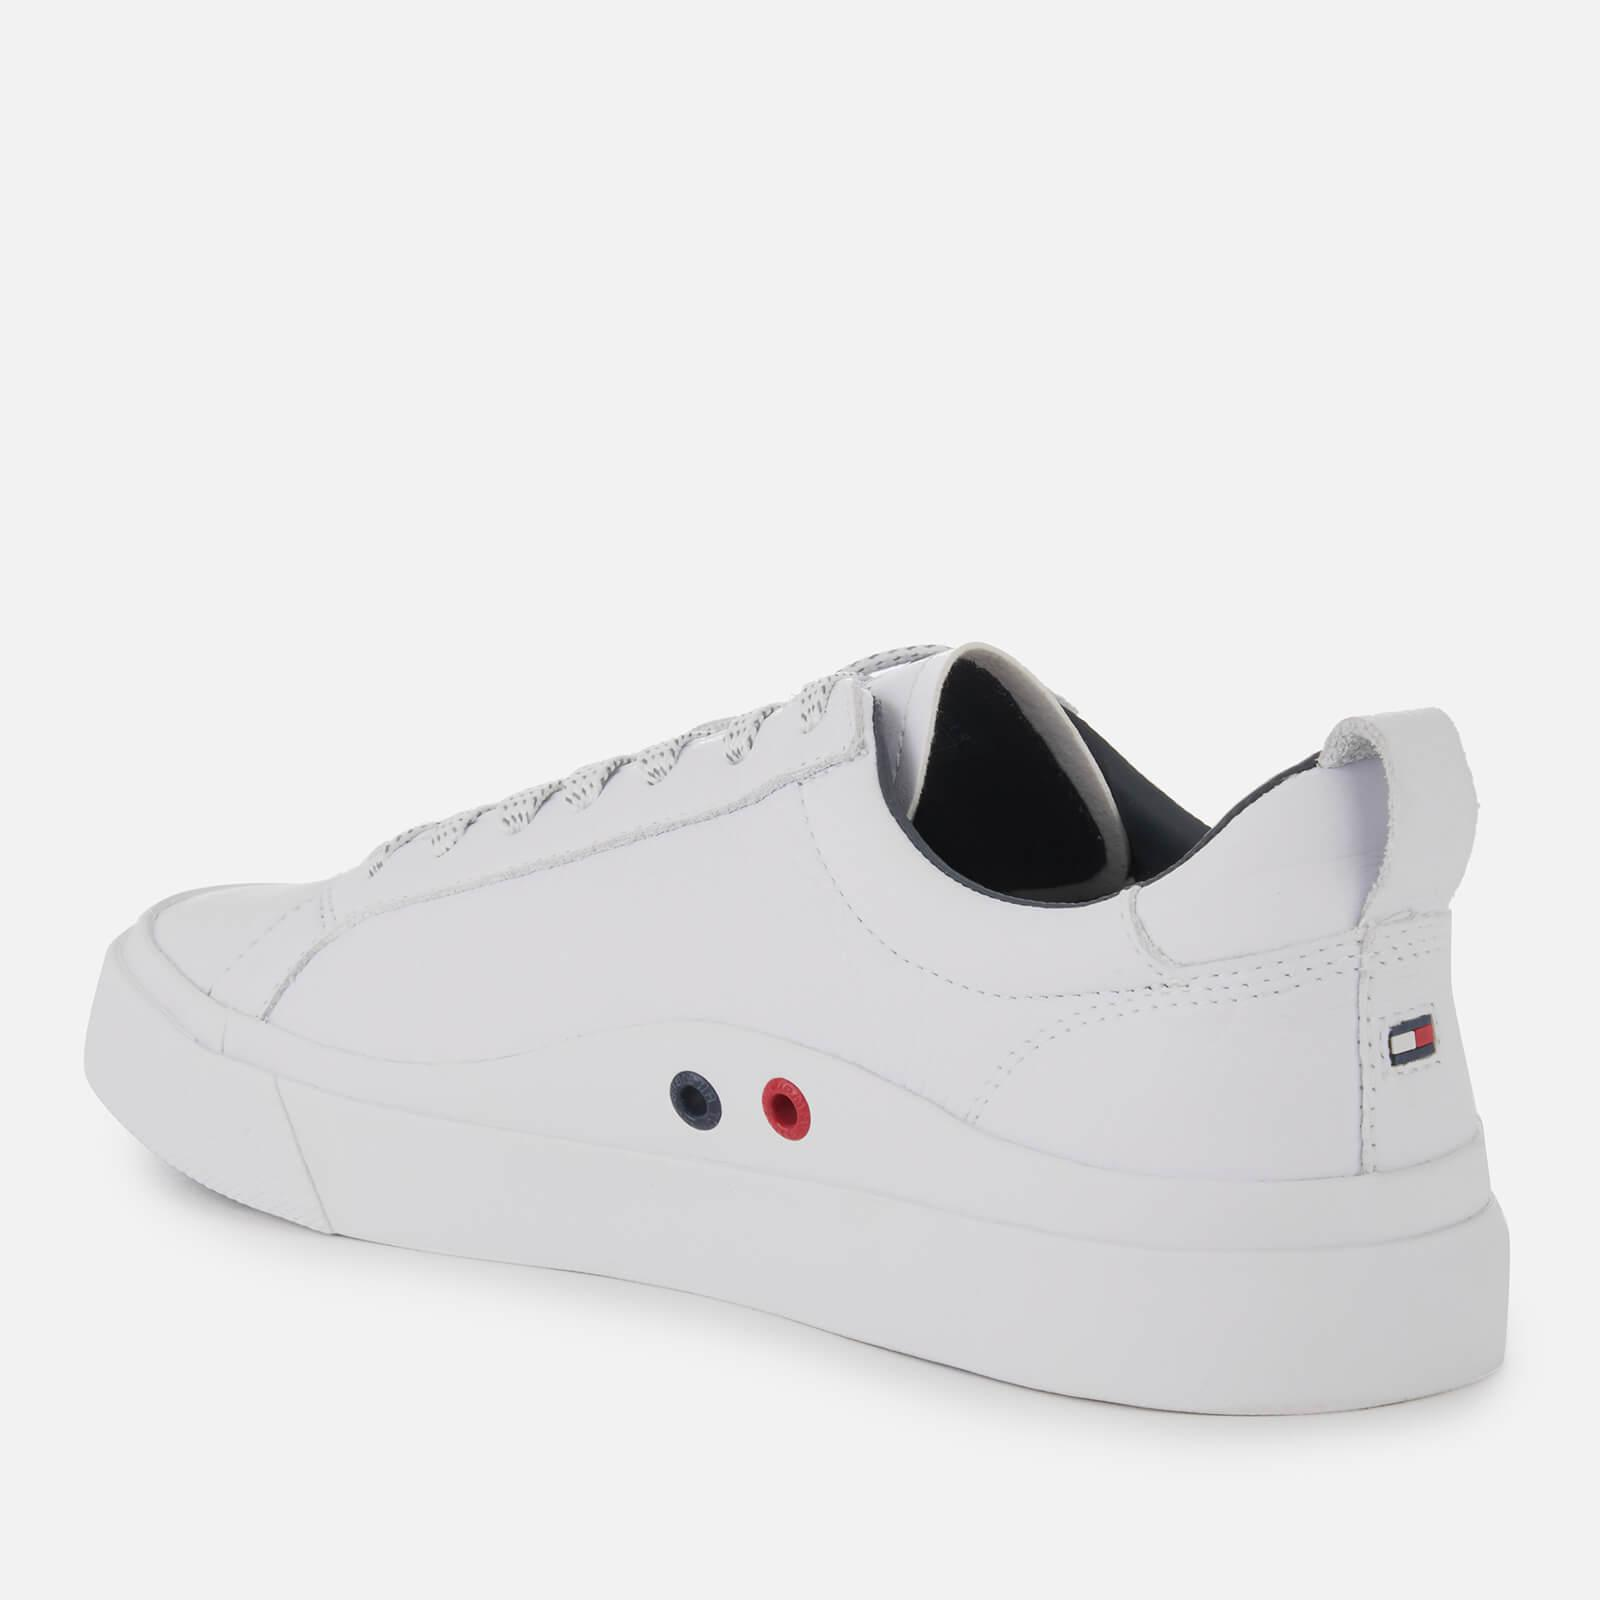 96c516b71a53 Tommy Hilfiger - Multicolor Flag Detail Leather Trainers for Men - Lyst.  View fullscreen